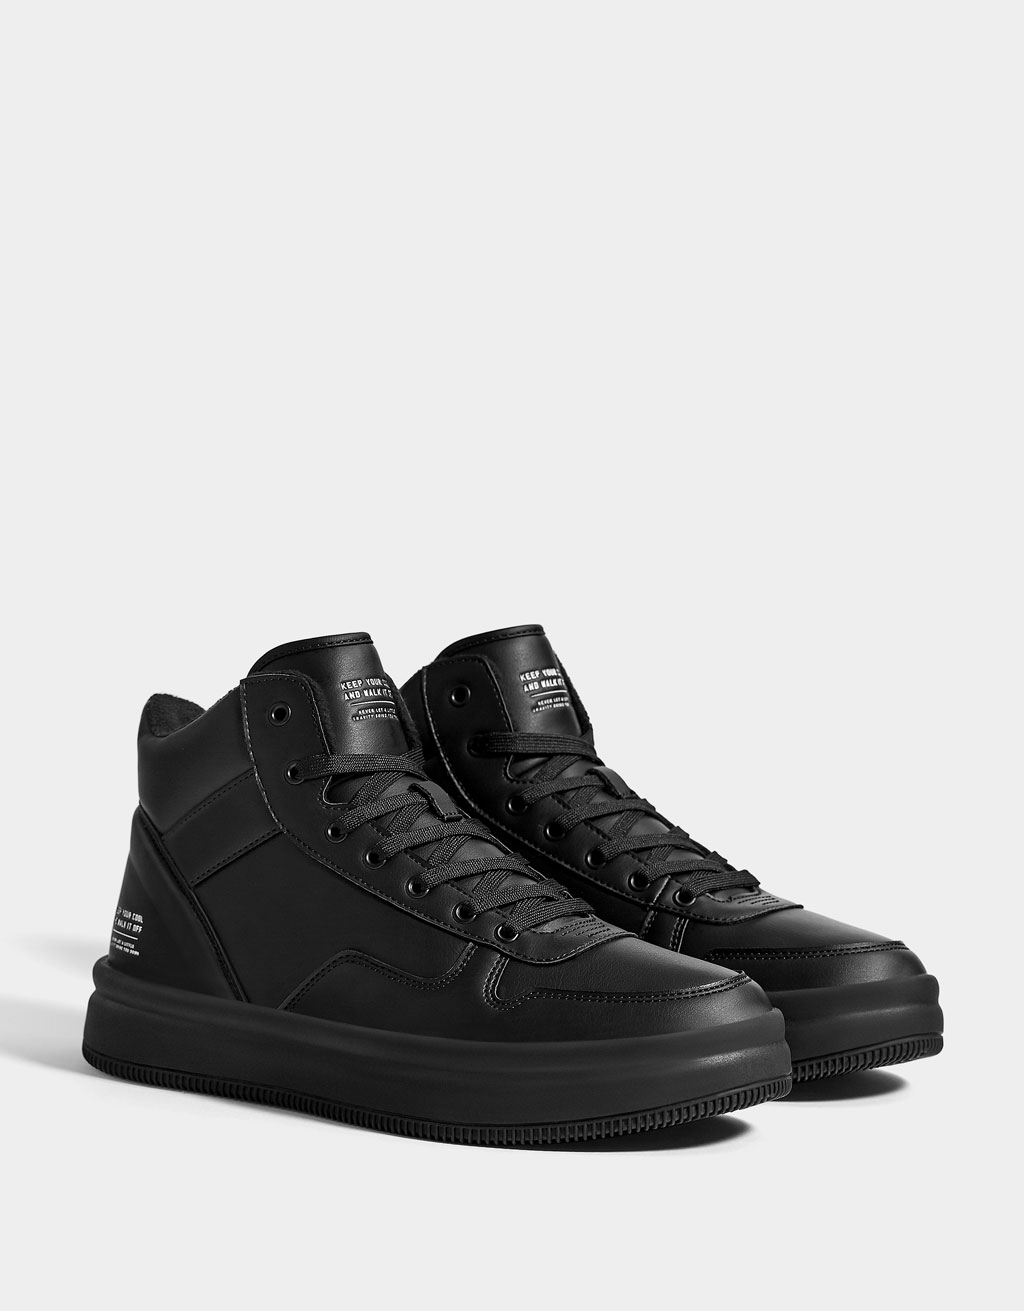 Men's lined high top trainers